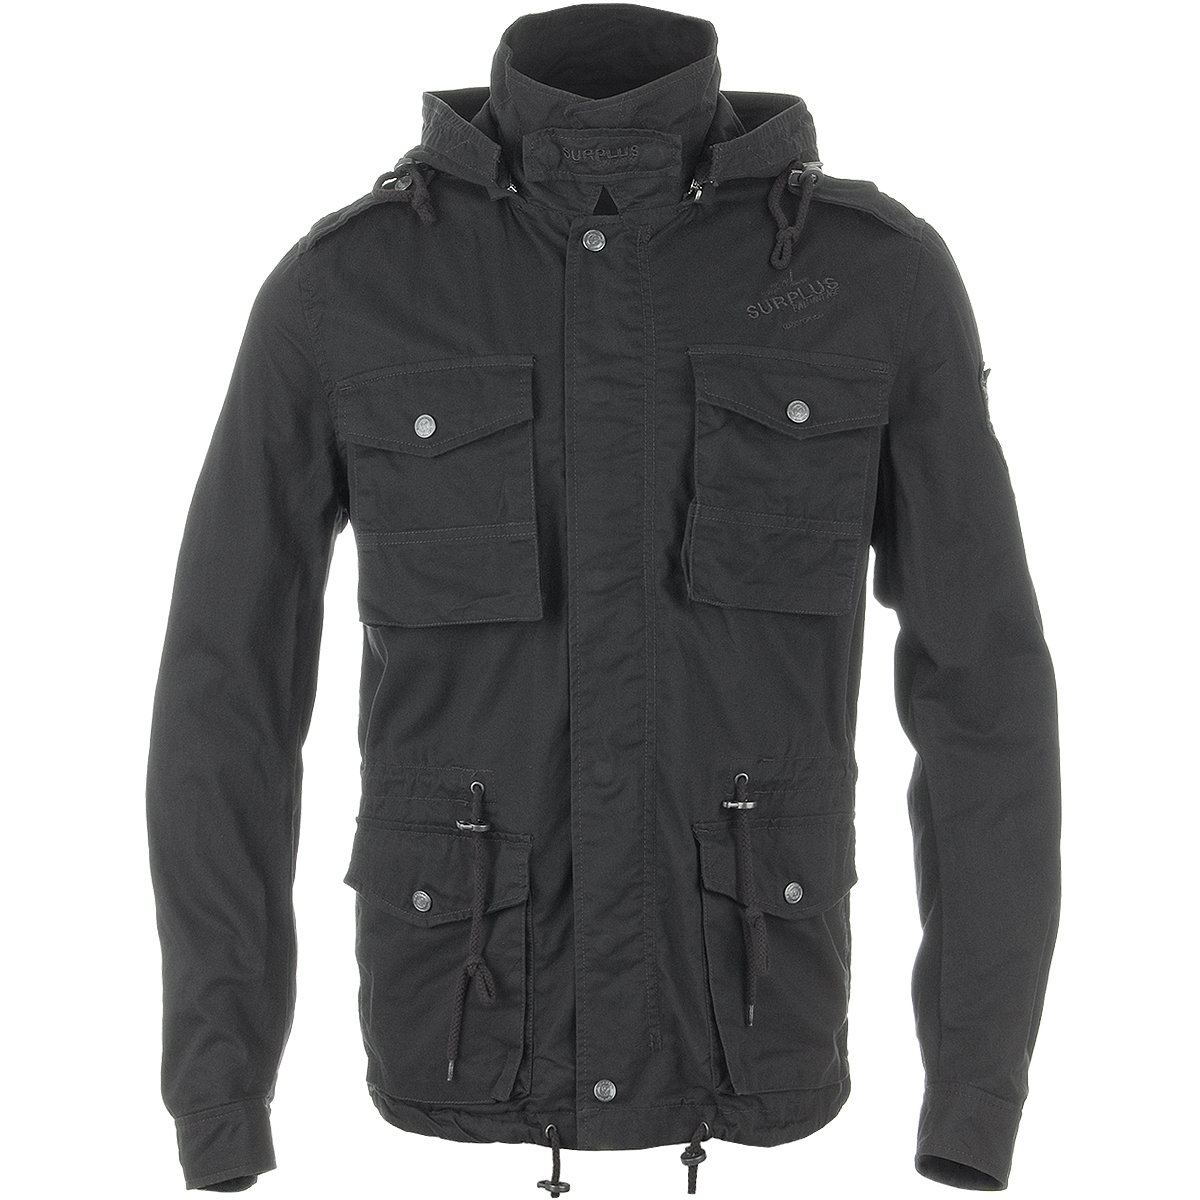 Mens Black Jacket With Hood | Jackets Review